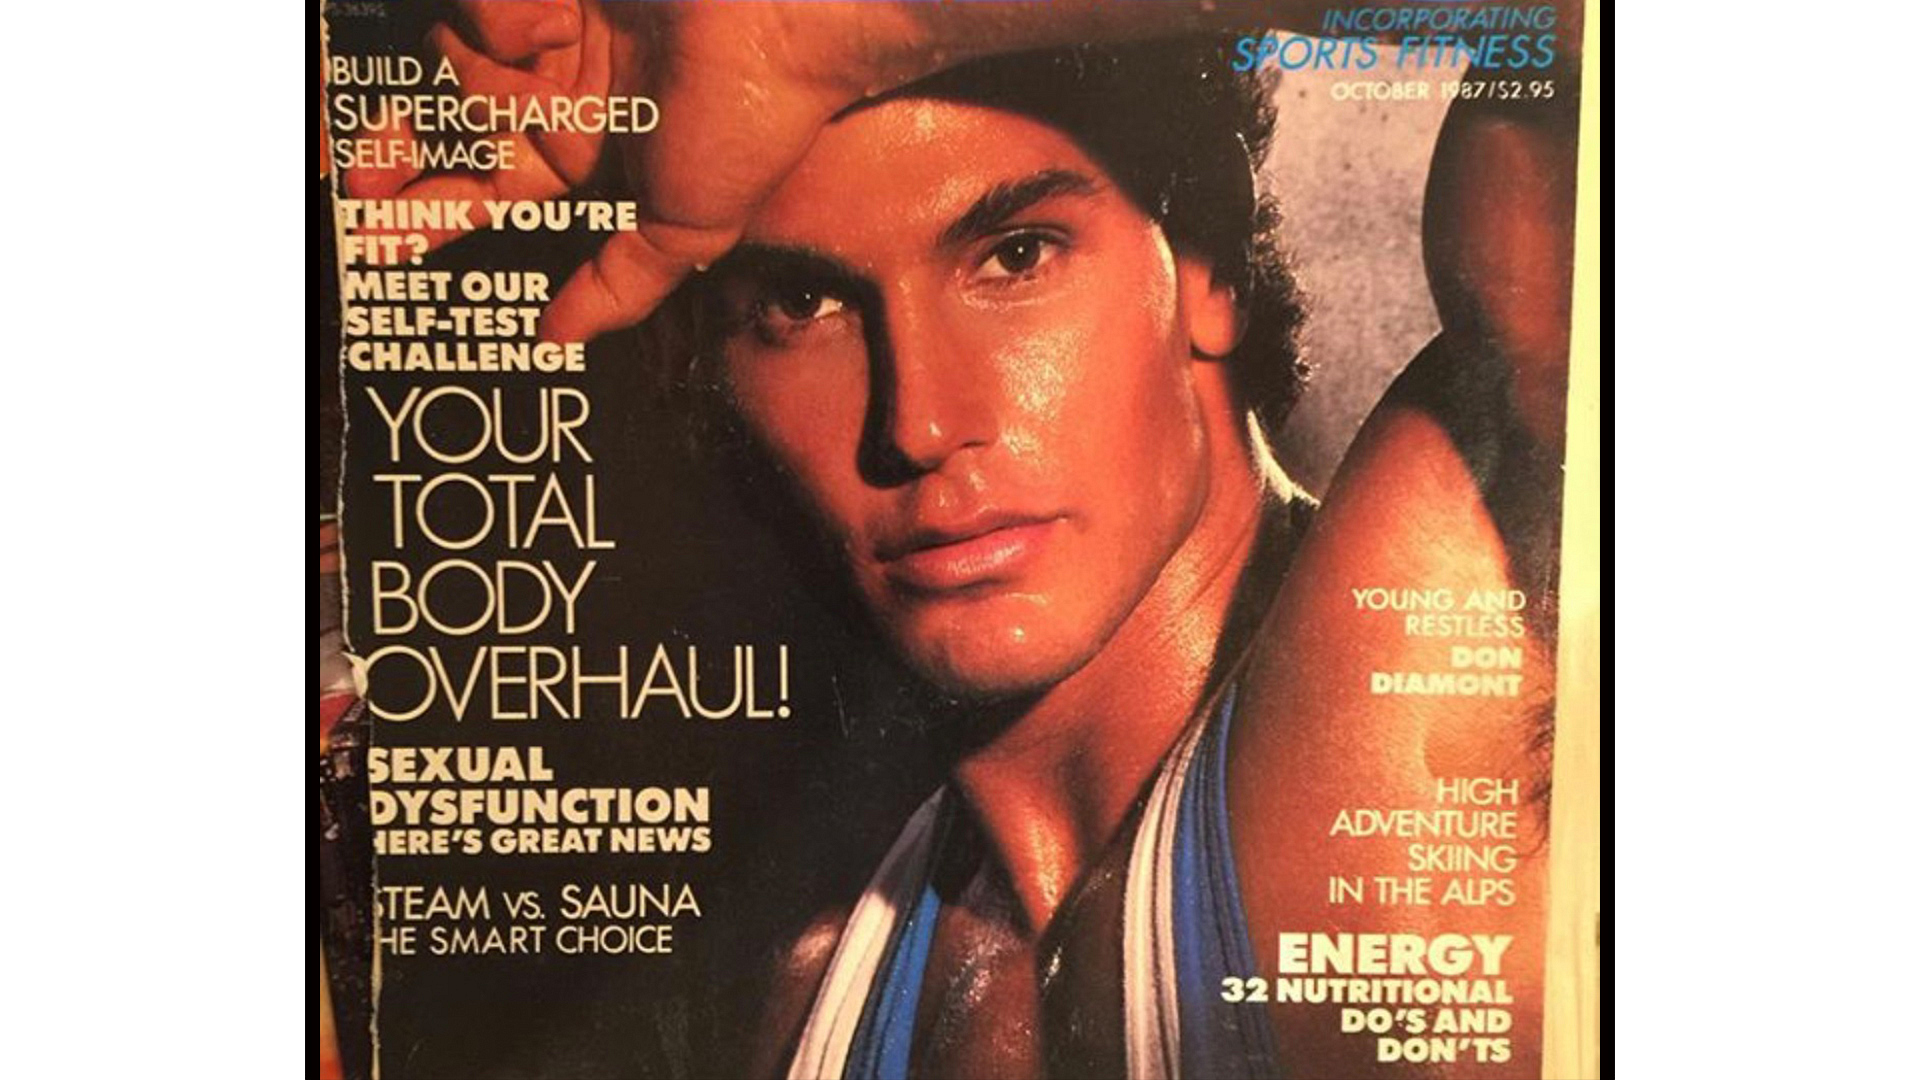 Long-time athlete Don Diamont smoldered on the cover of a fitness magazine.